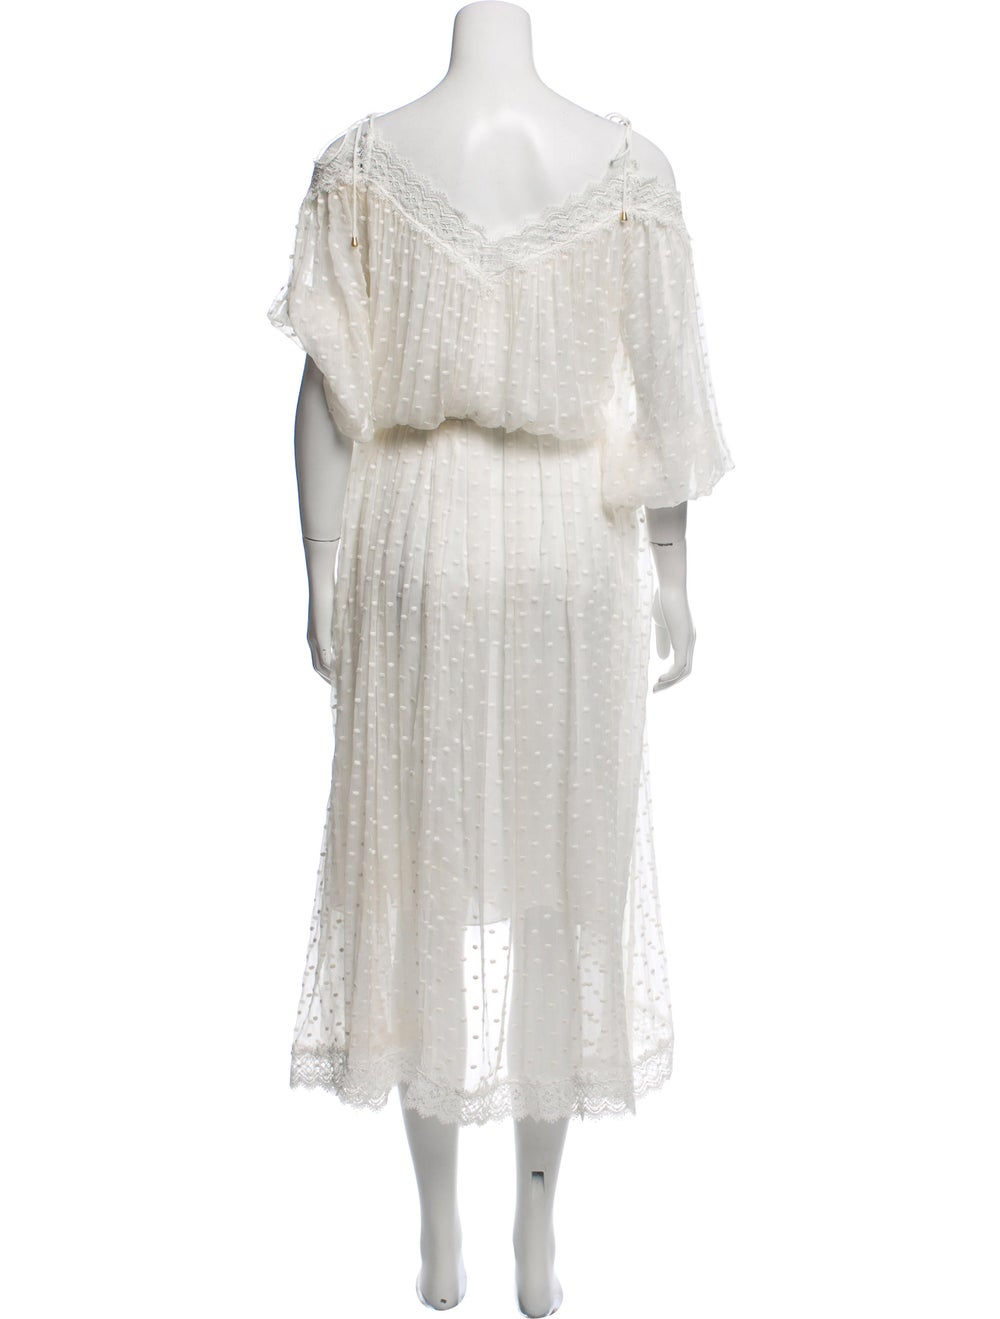 Zimmermann Silk Lace-Trimmed Dress - image 3